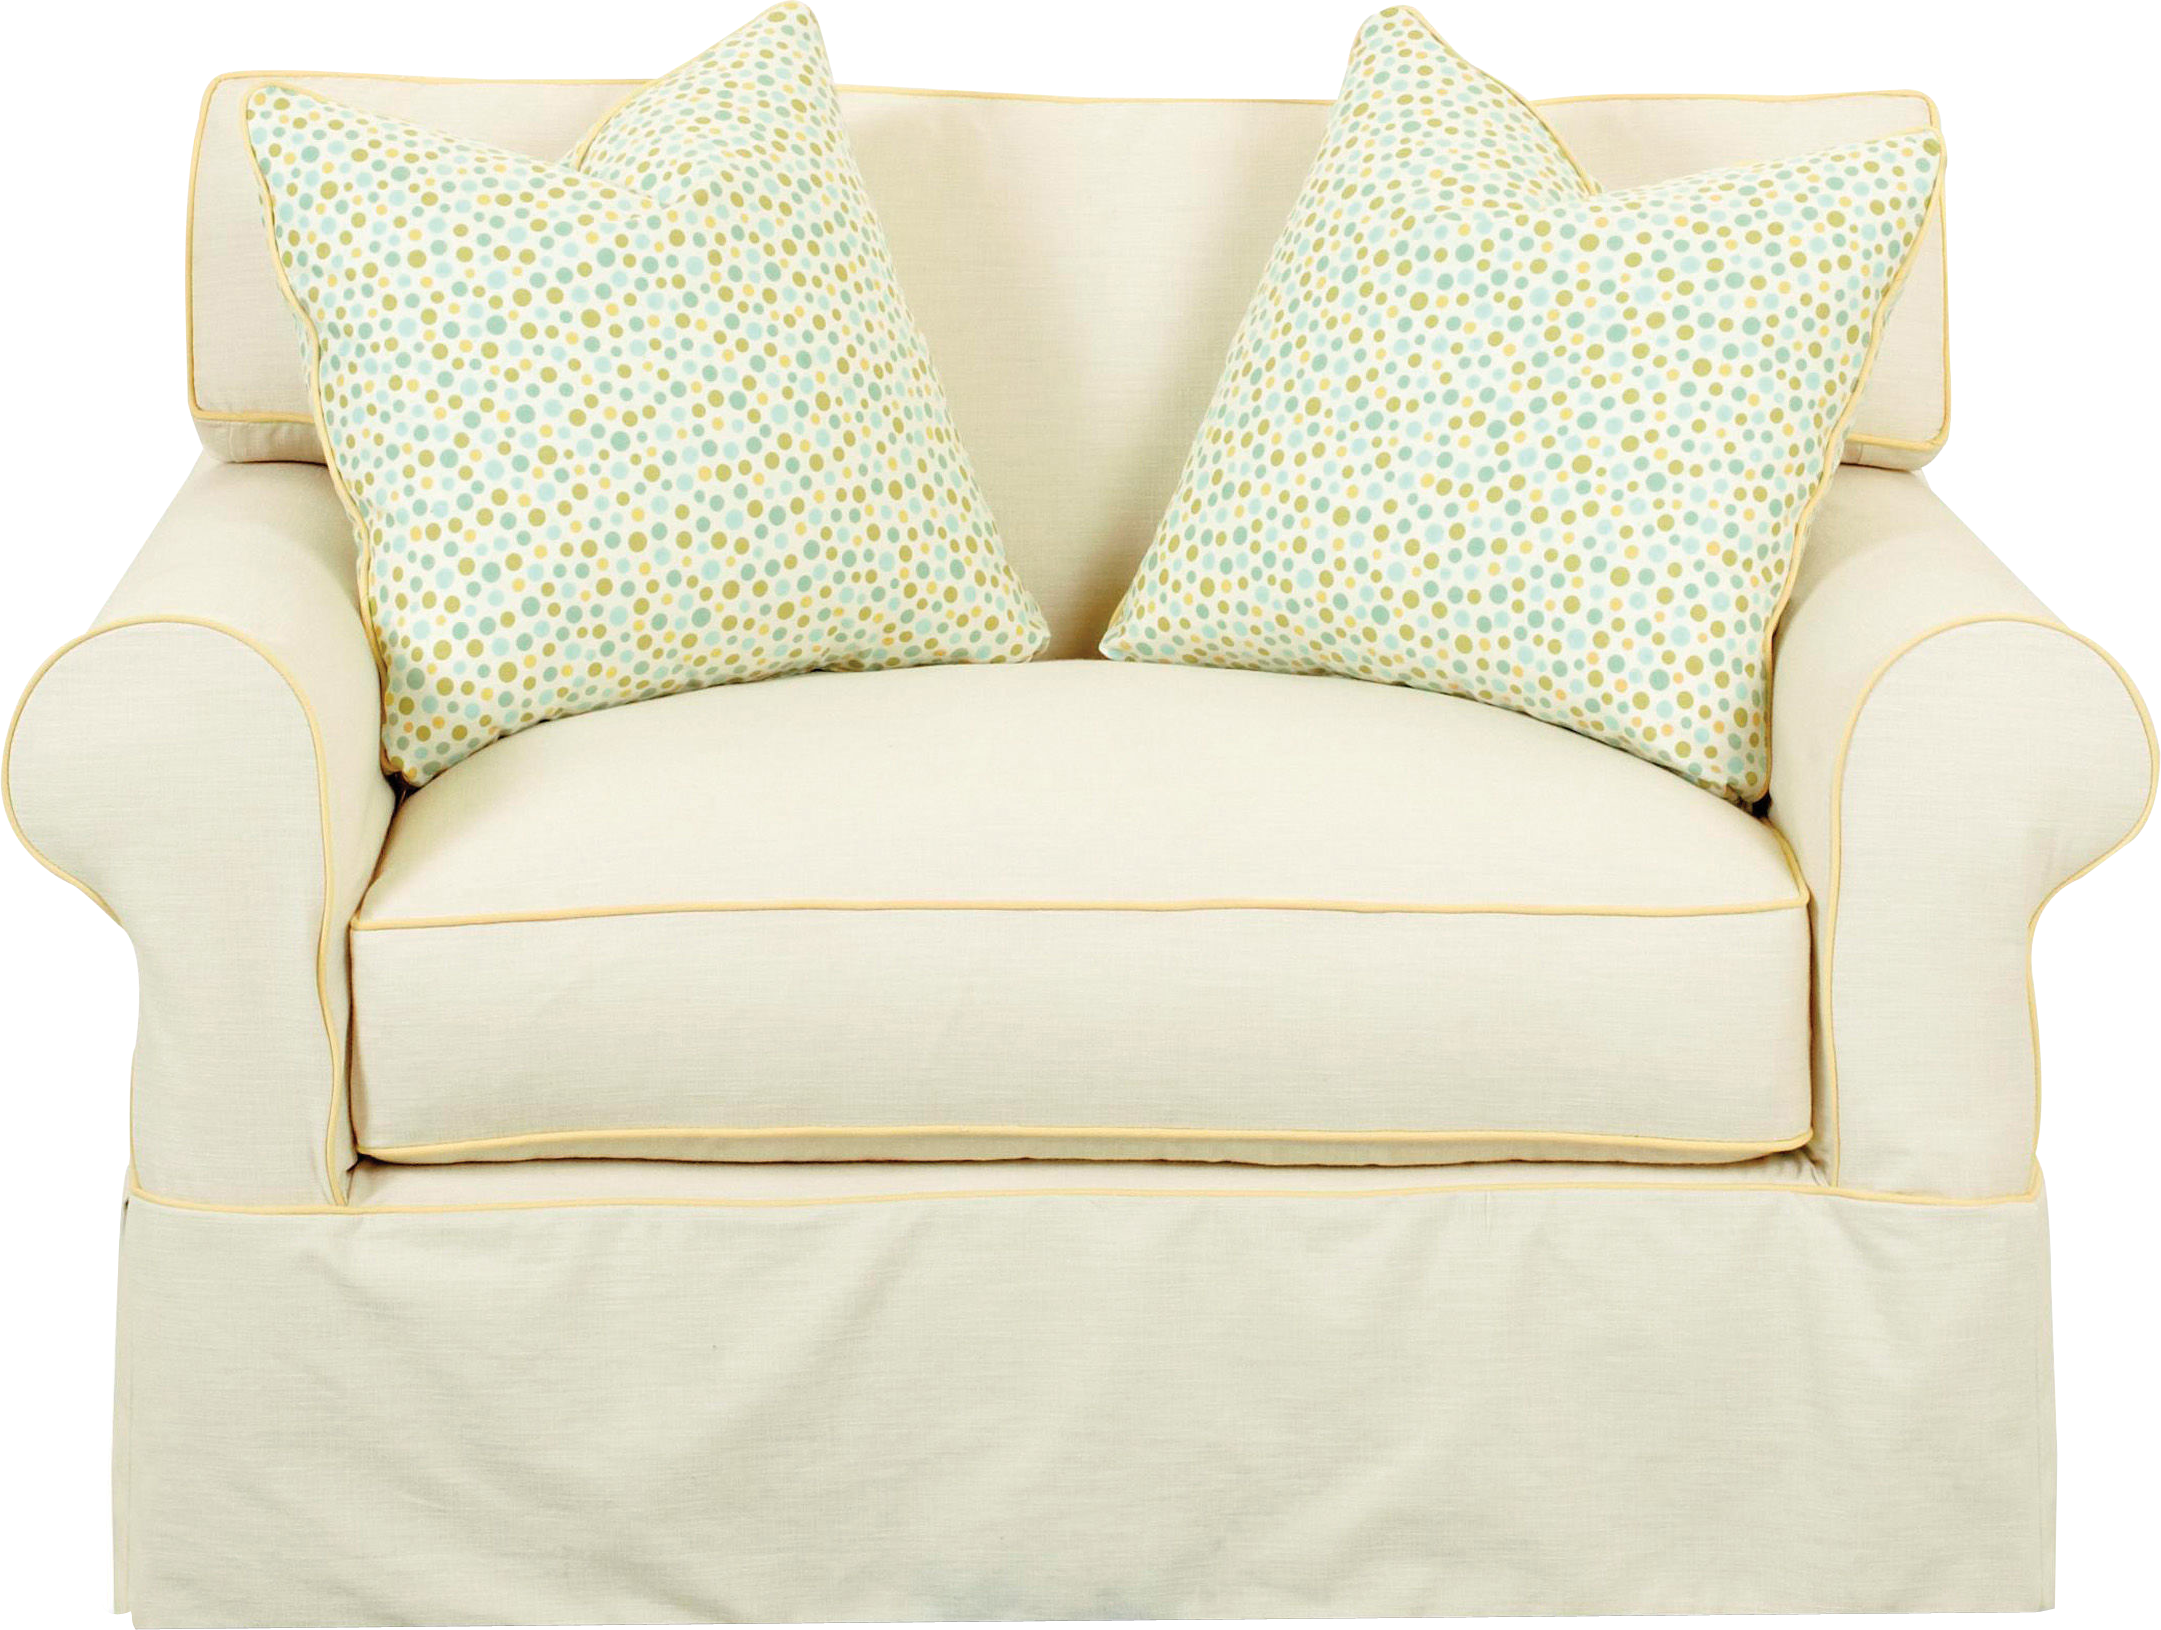 White couch png. Sofa images free download